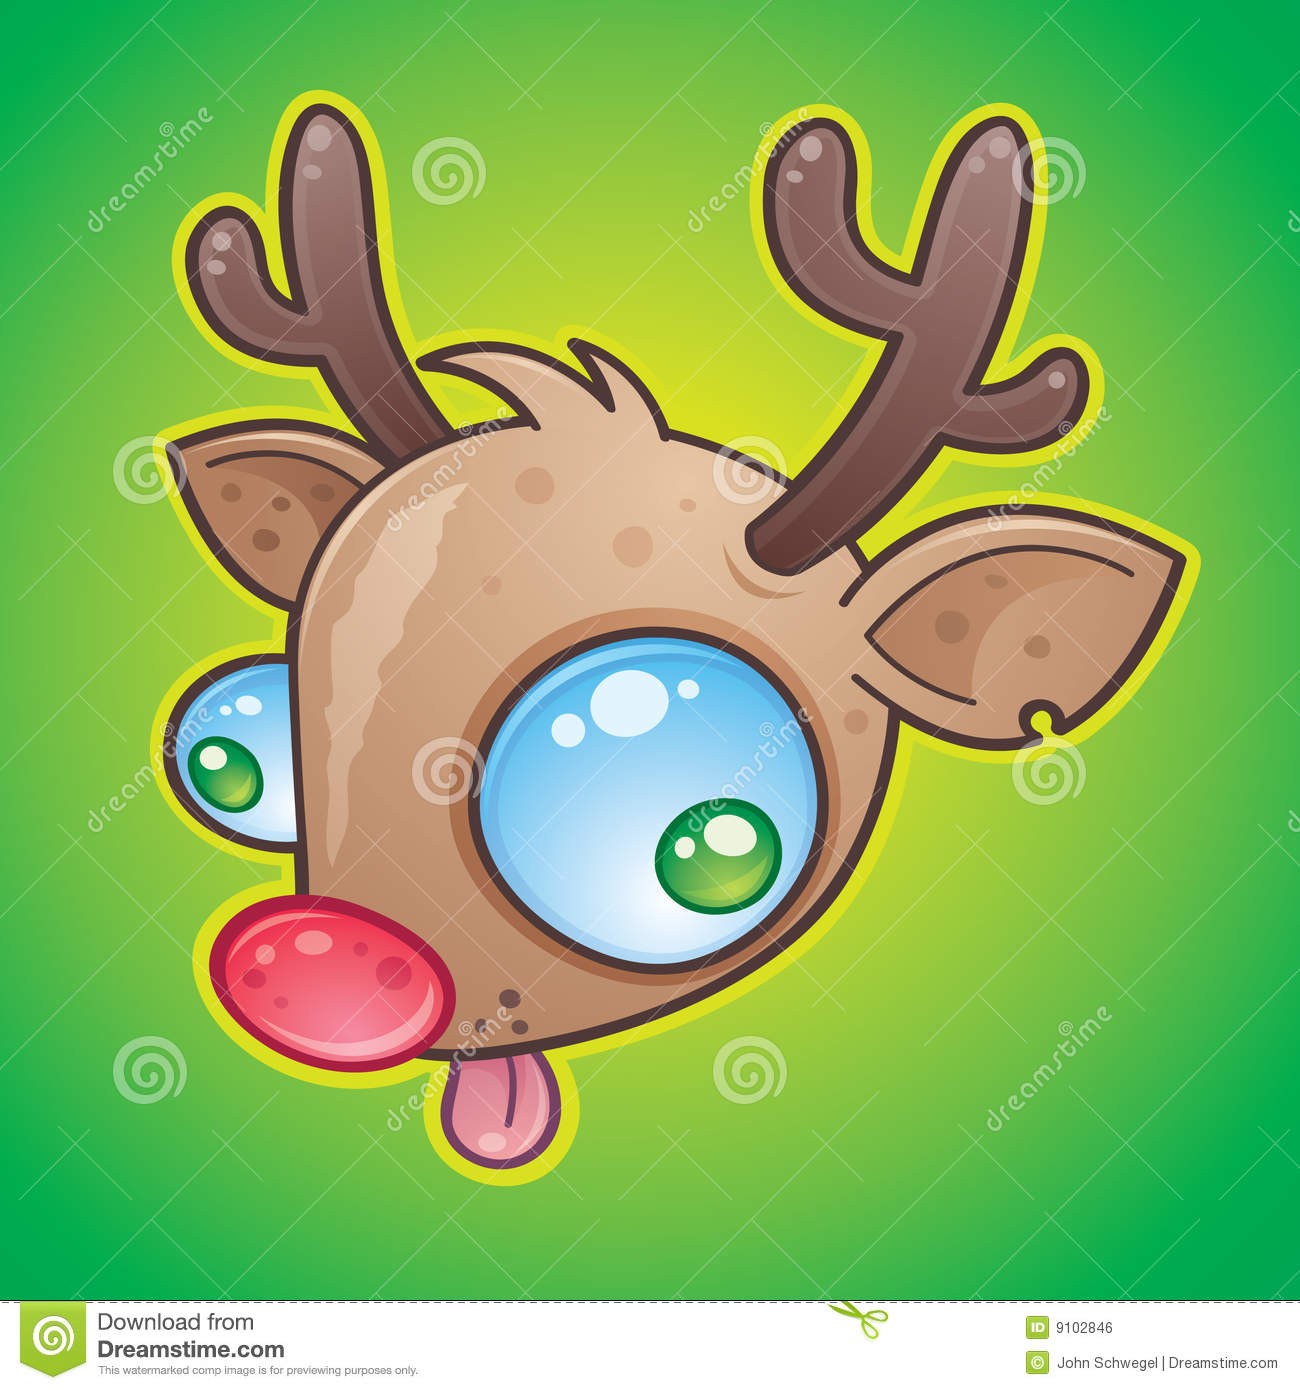 Rudolph The Red-Nosed Reindeer Stock Vector - Illustration ...